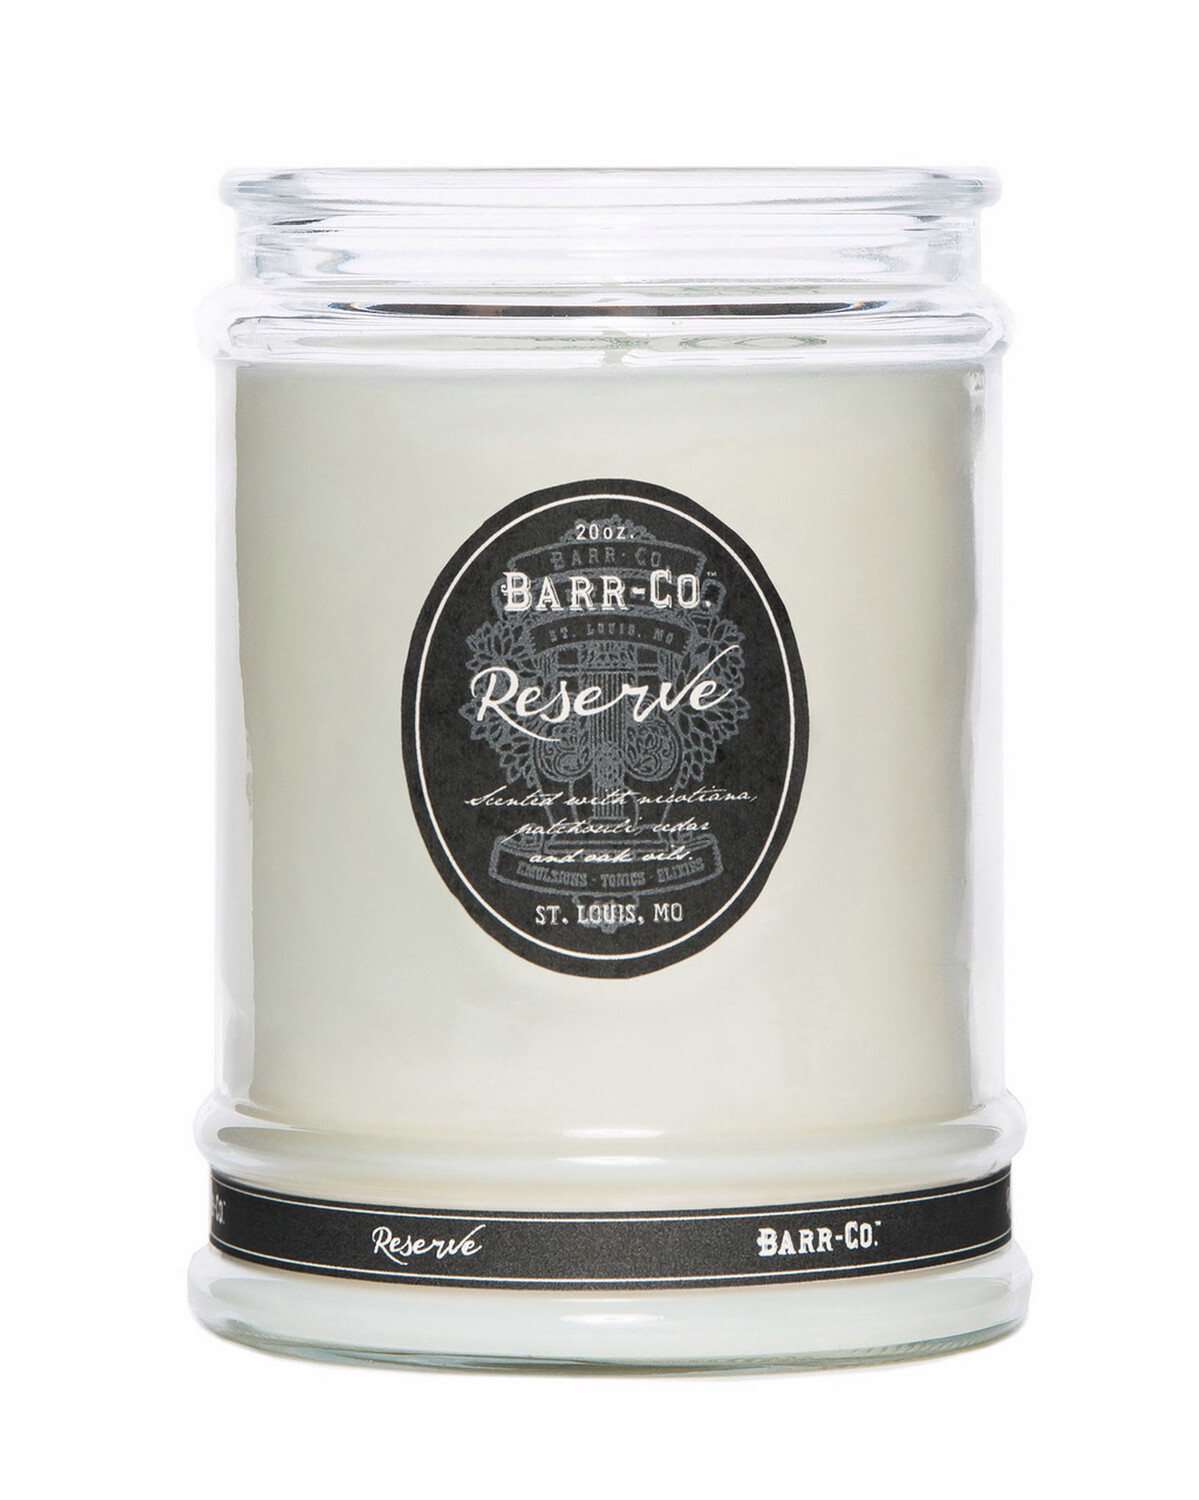 Barr-Co. Reserve Tumbler Candle